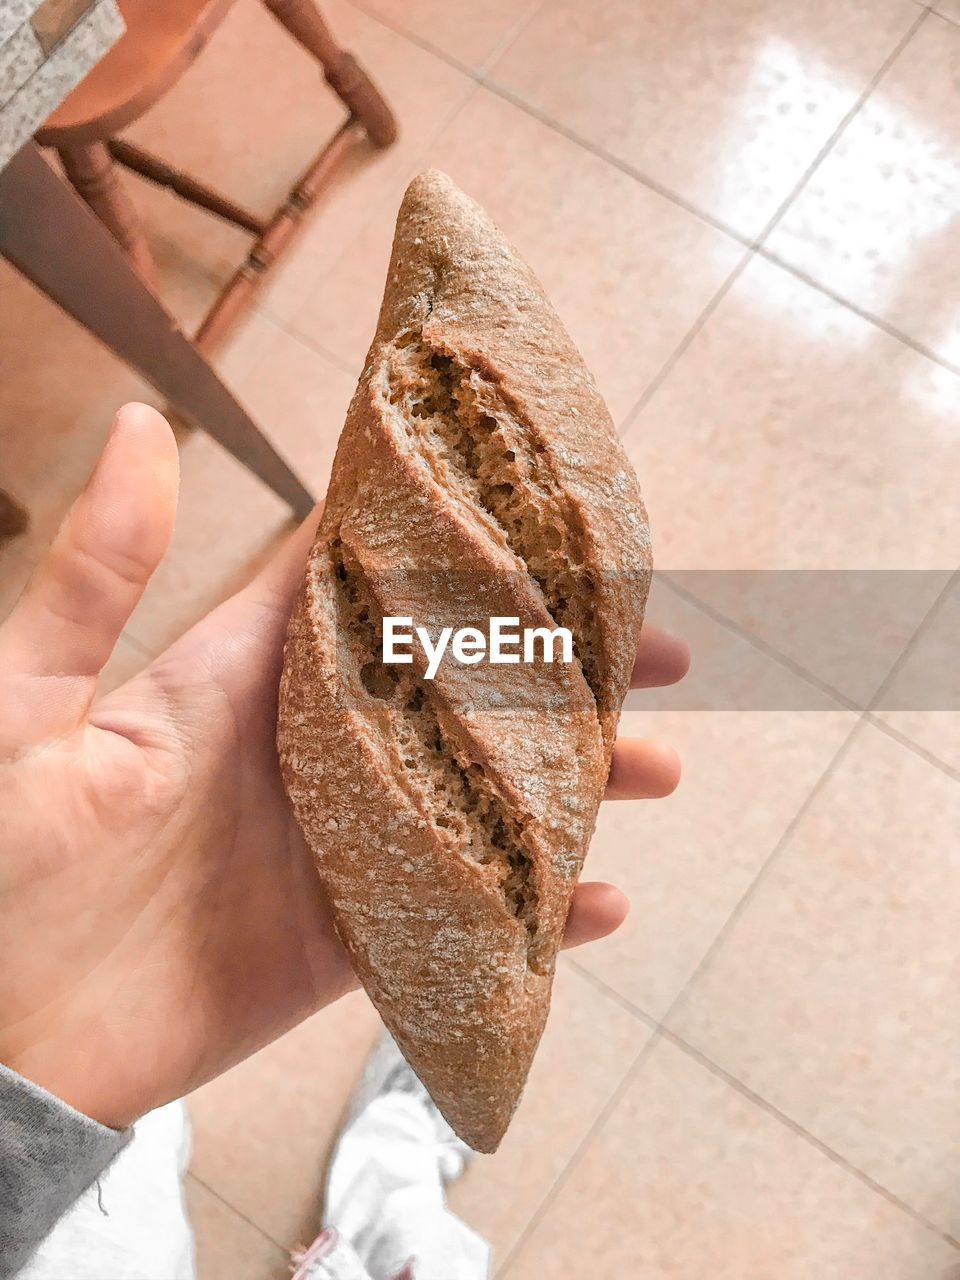 human hand, hand, one person, human body part, bread, holding, food, high angle view, food and drink, real people, freshness, tile, indoors, lifestyles, flooring, close-up, personal perspective, body part, tiled floor, finger, snack